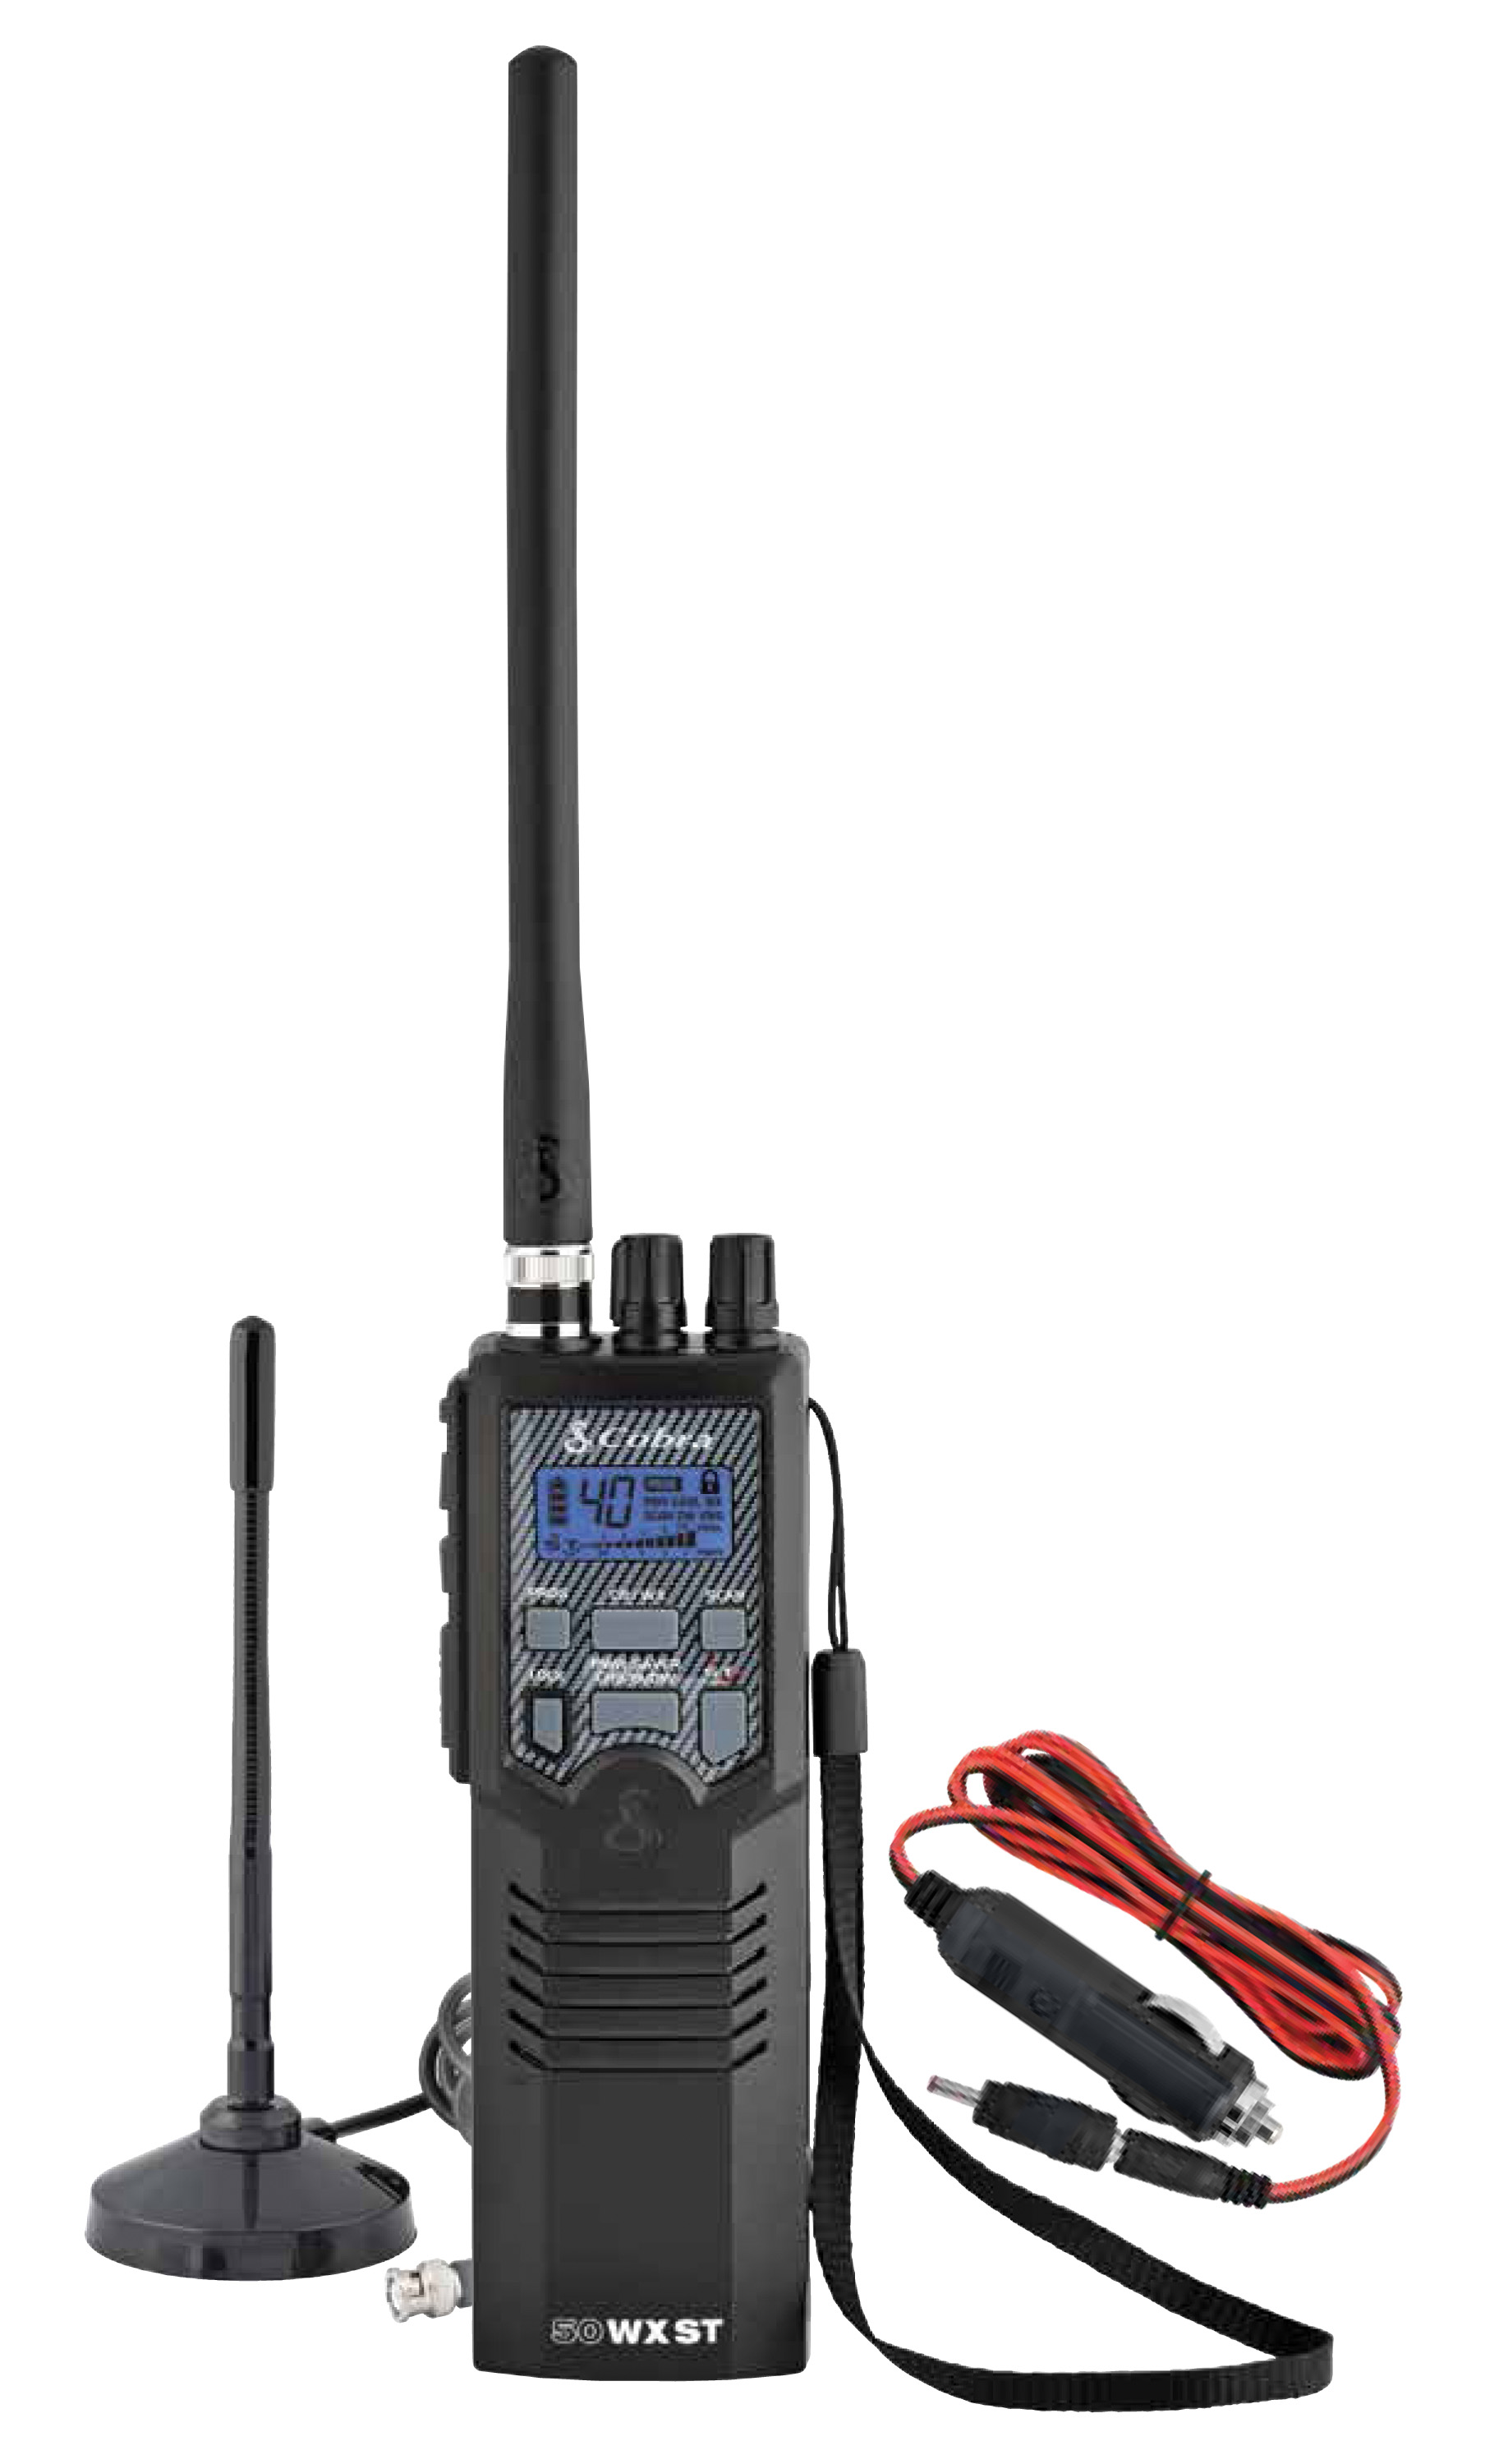 COBRA - HH50WXST HANDHELD CB RADIO WITH NOAA WEATHER, MAGNETIC MOUNT ANTENNA & DC CIGARETTE POWER CORD